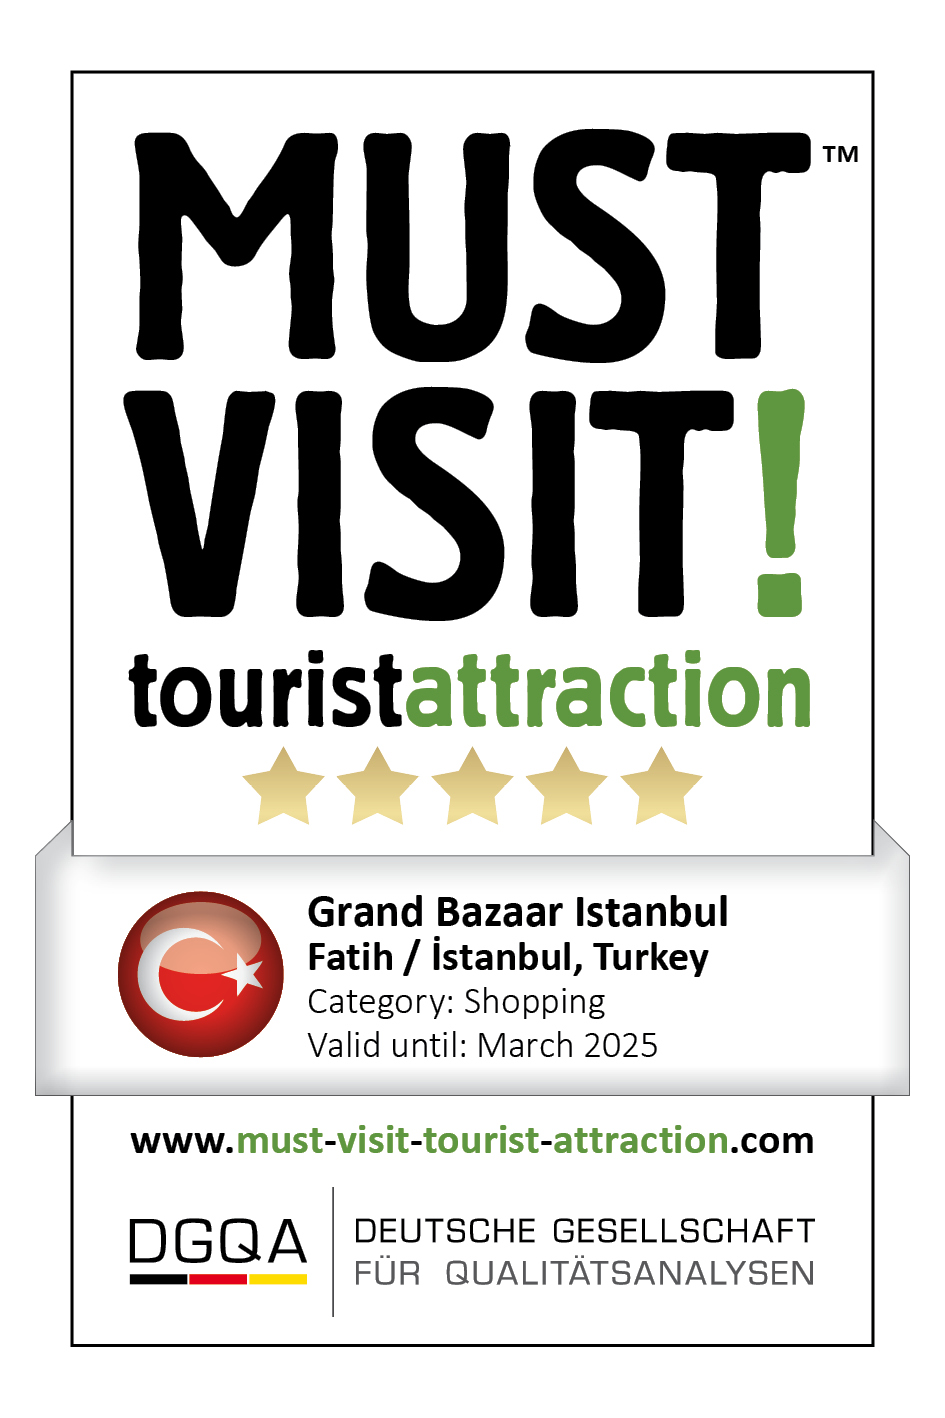 MUST VISIT! tourist attraction (dgqa) grand bazaar istanbul